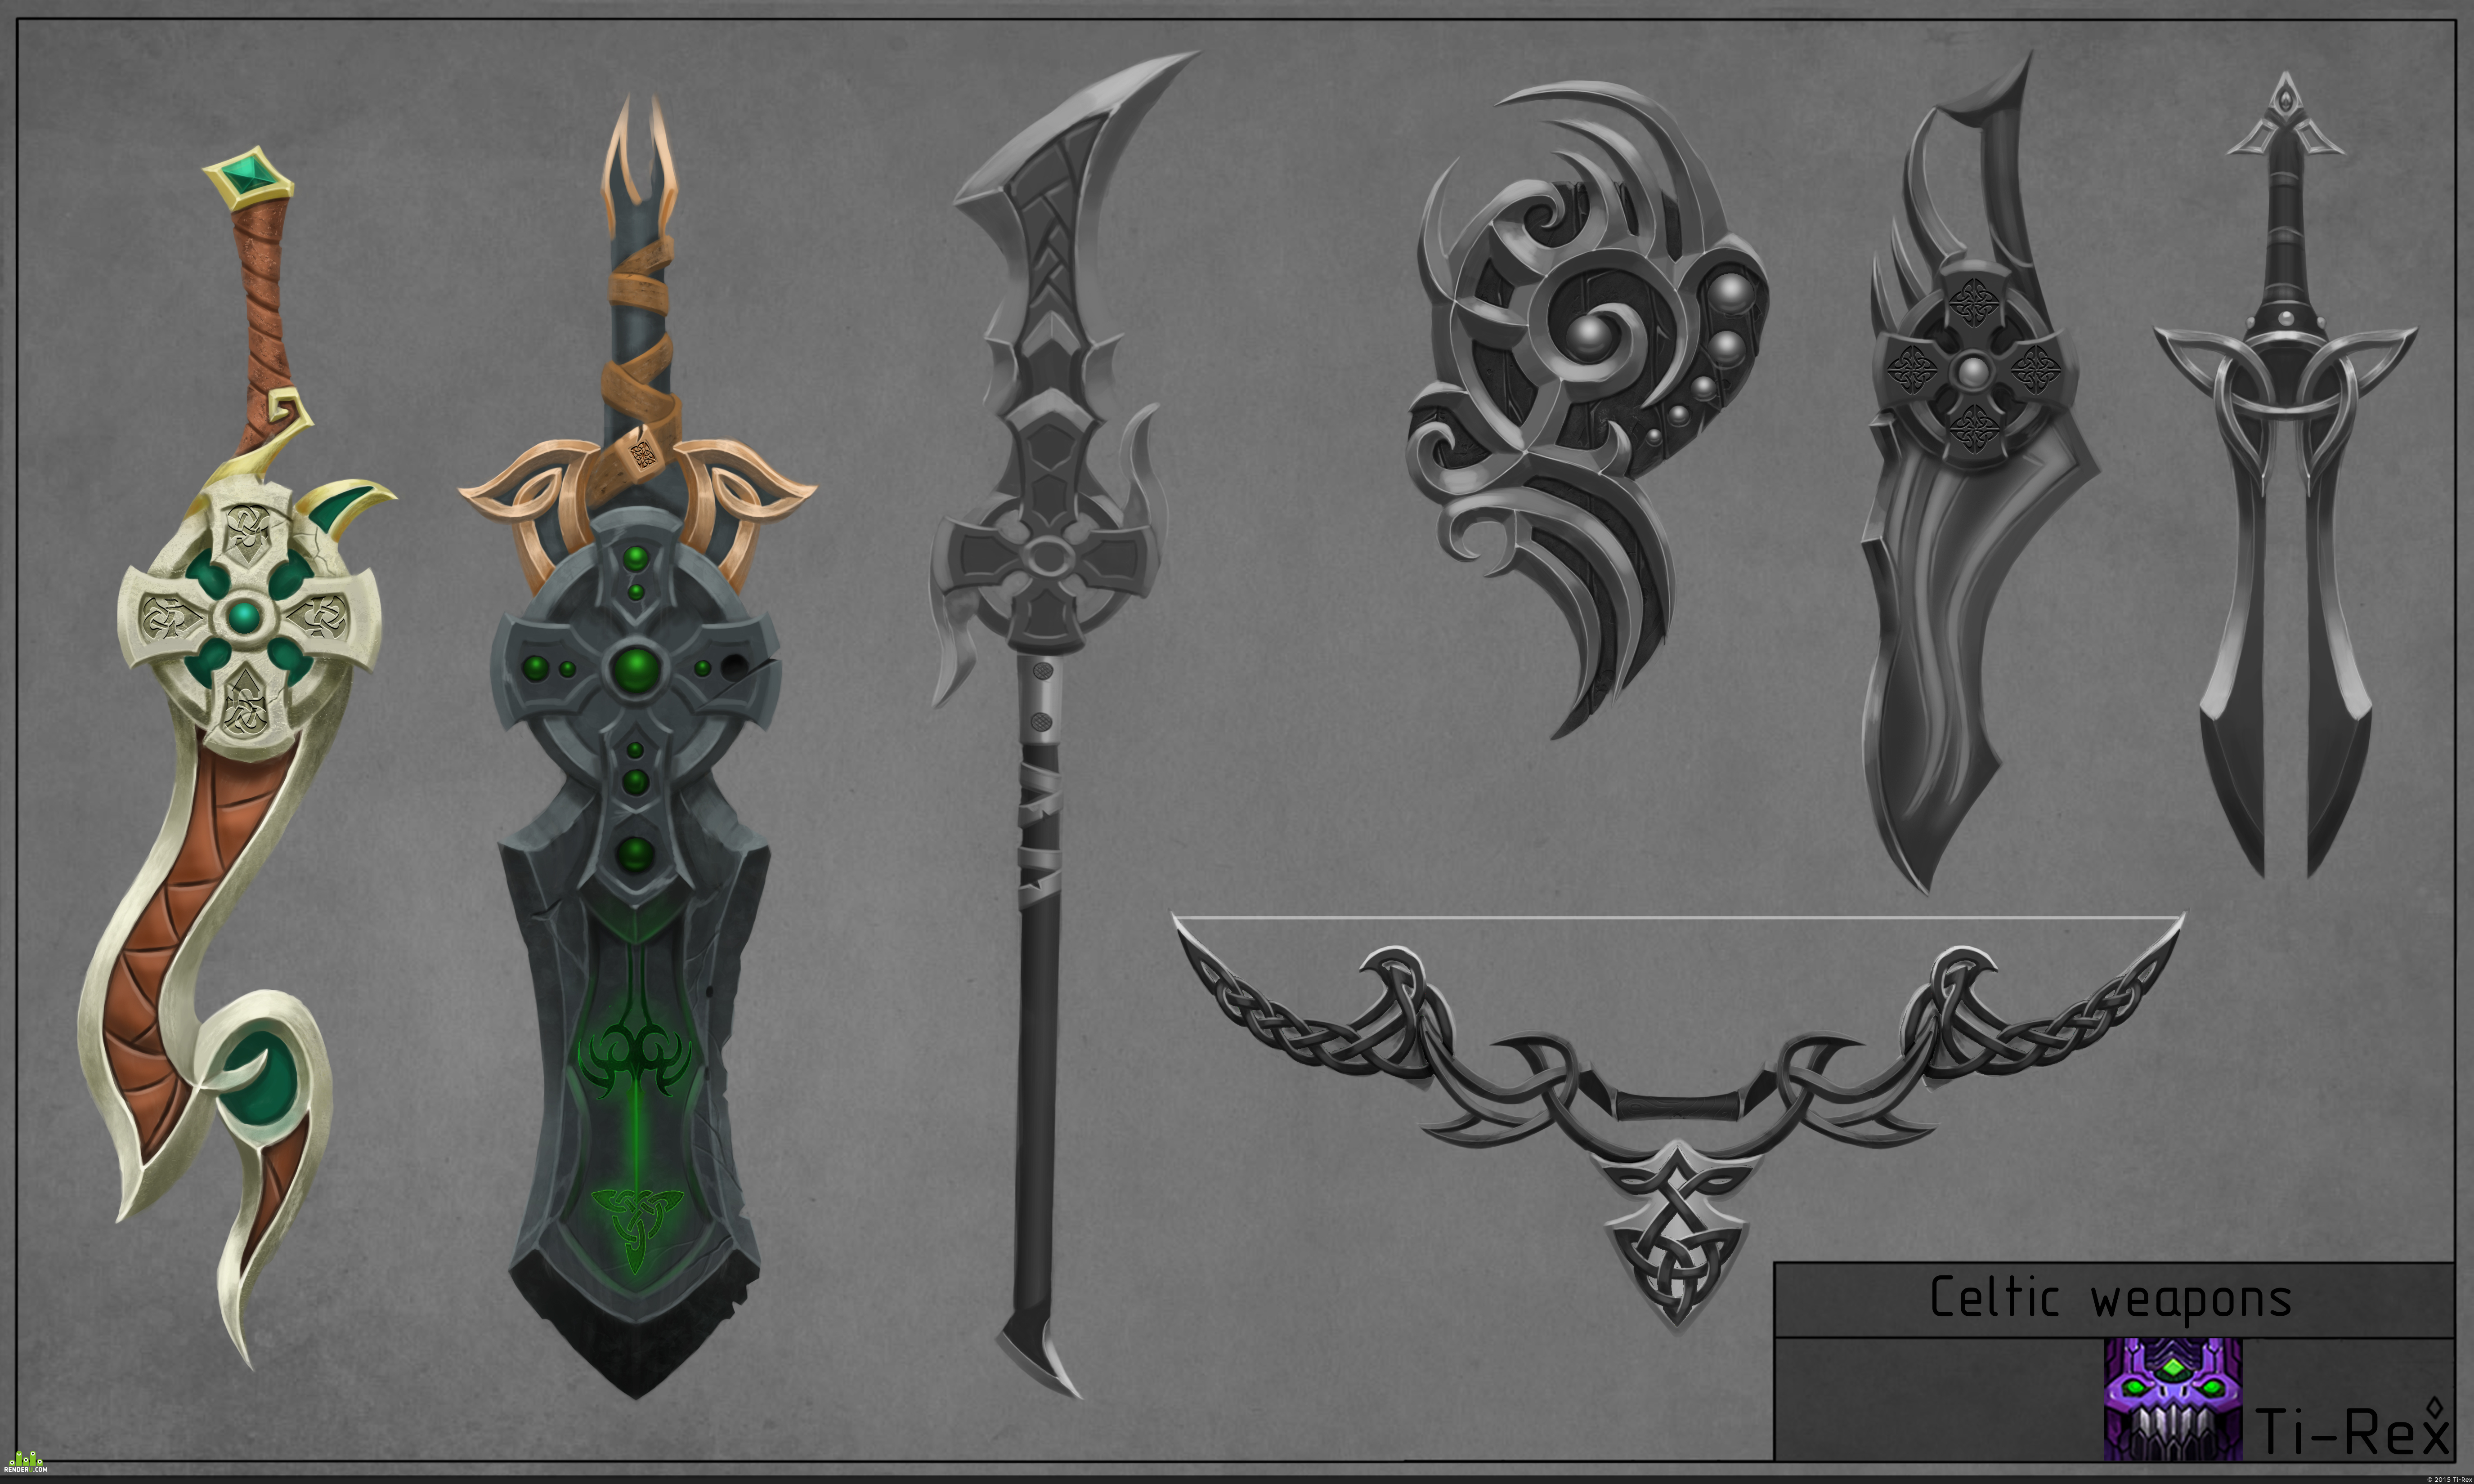 preview Celtic weapons